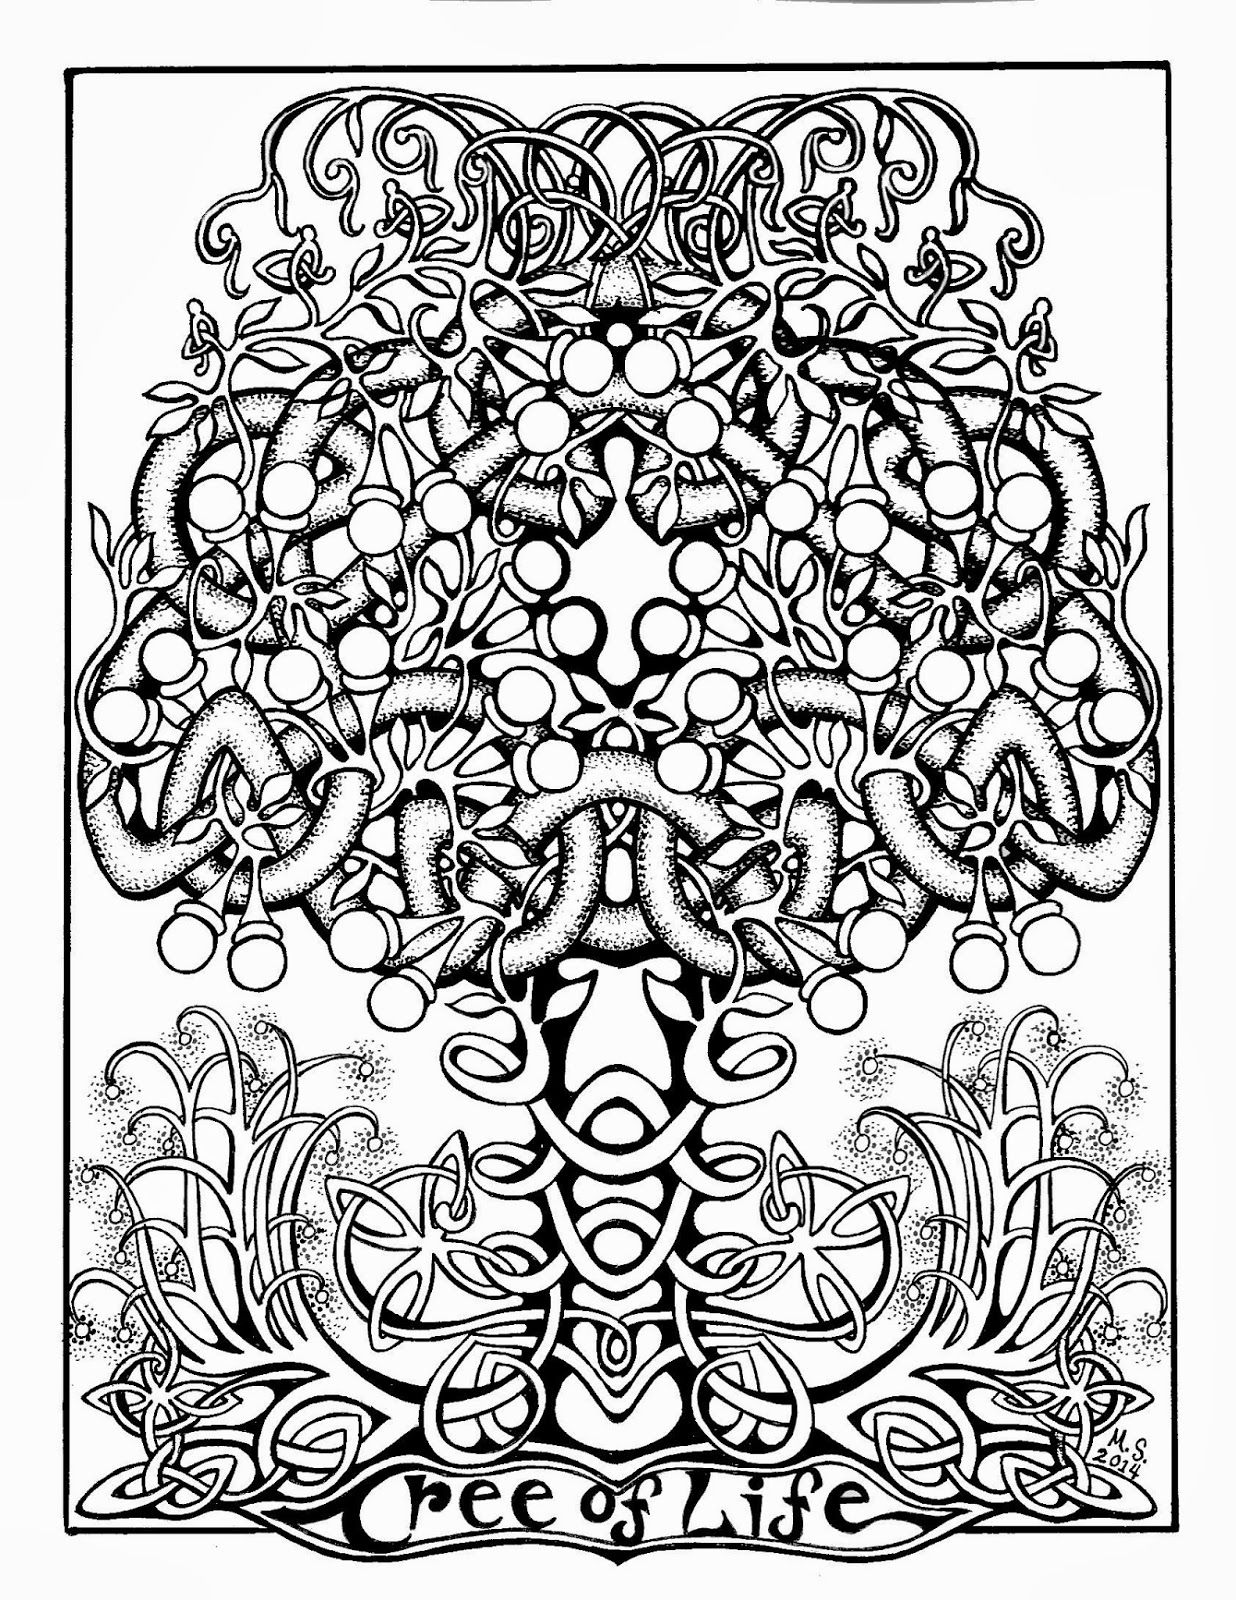 Tree Of Life Coloring Pages Almost All Kinds Of Tree Found In The Celtic Countries Have Been